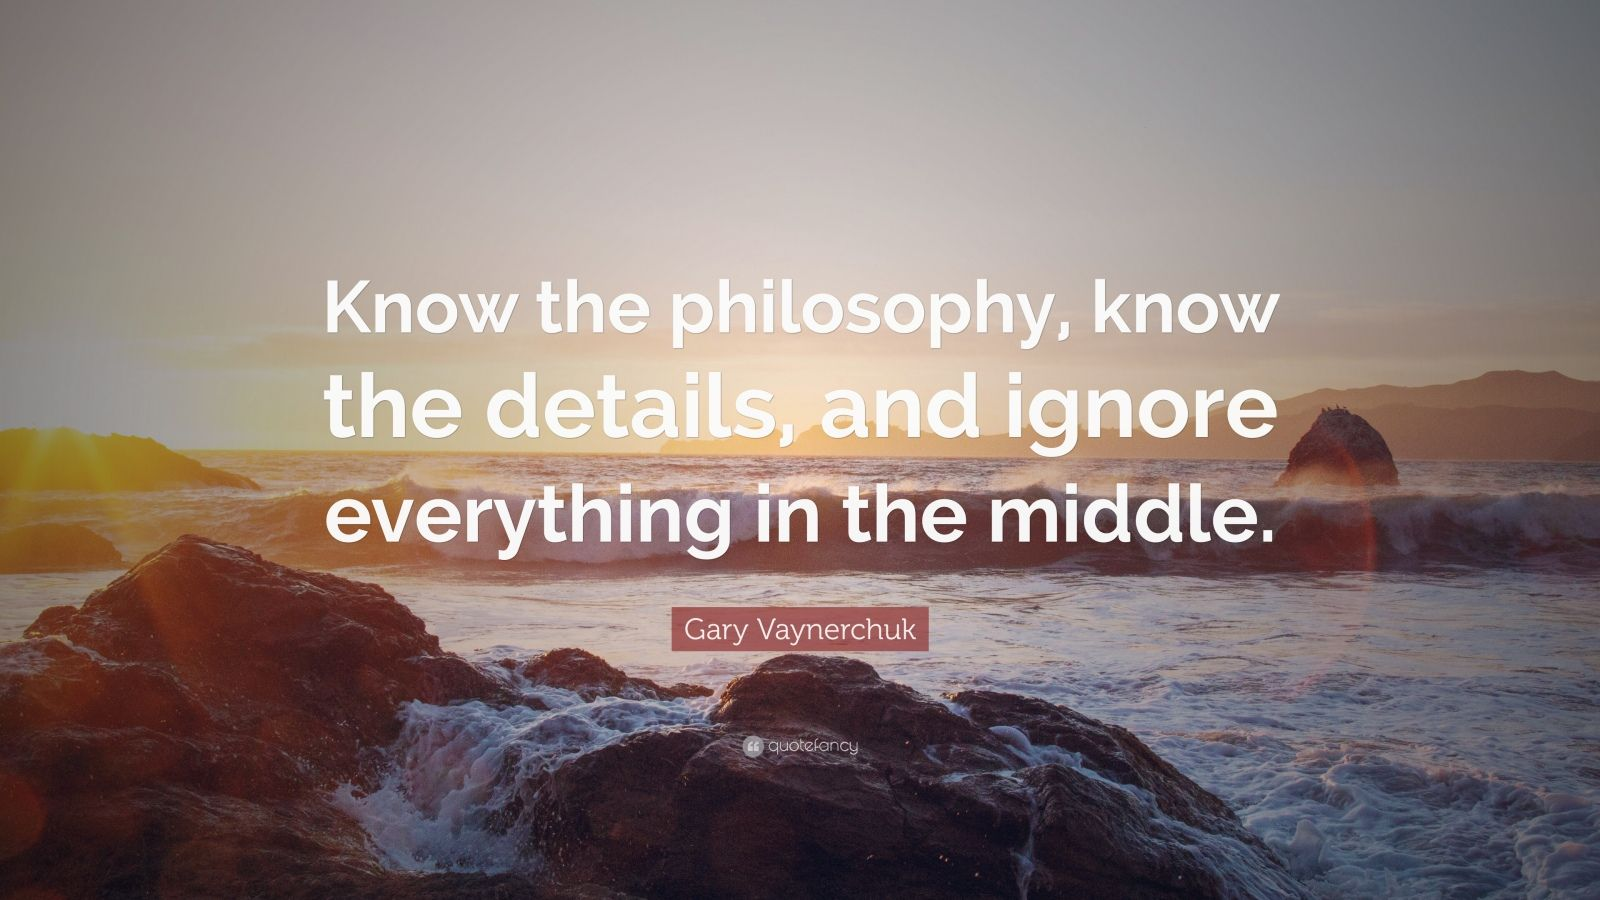 """Gary Vaynerchuk Quote: """"Know the philosophy, know the details, and ignore everything in the middle."""""""